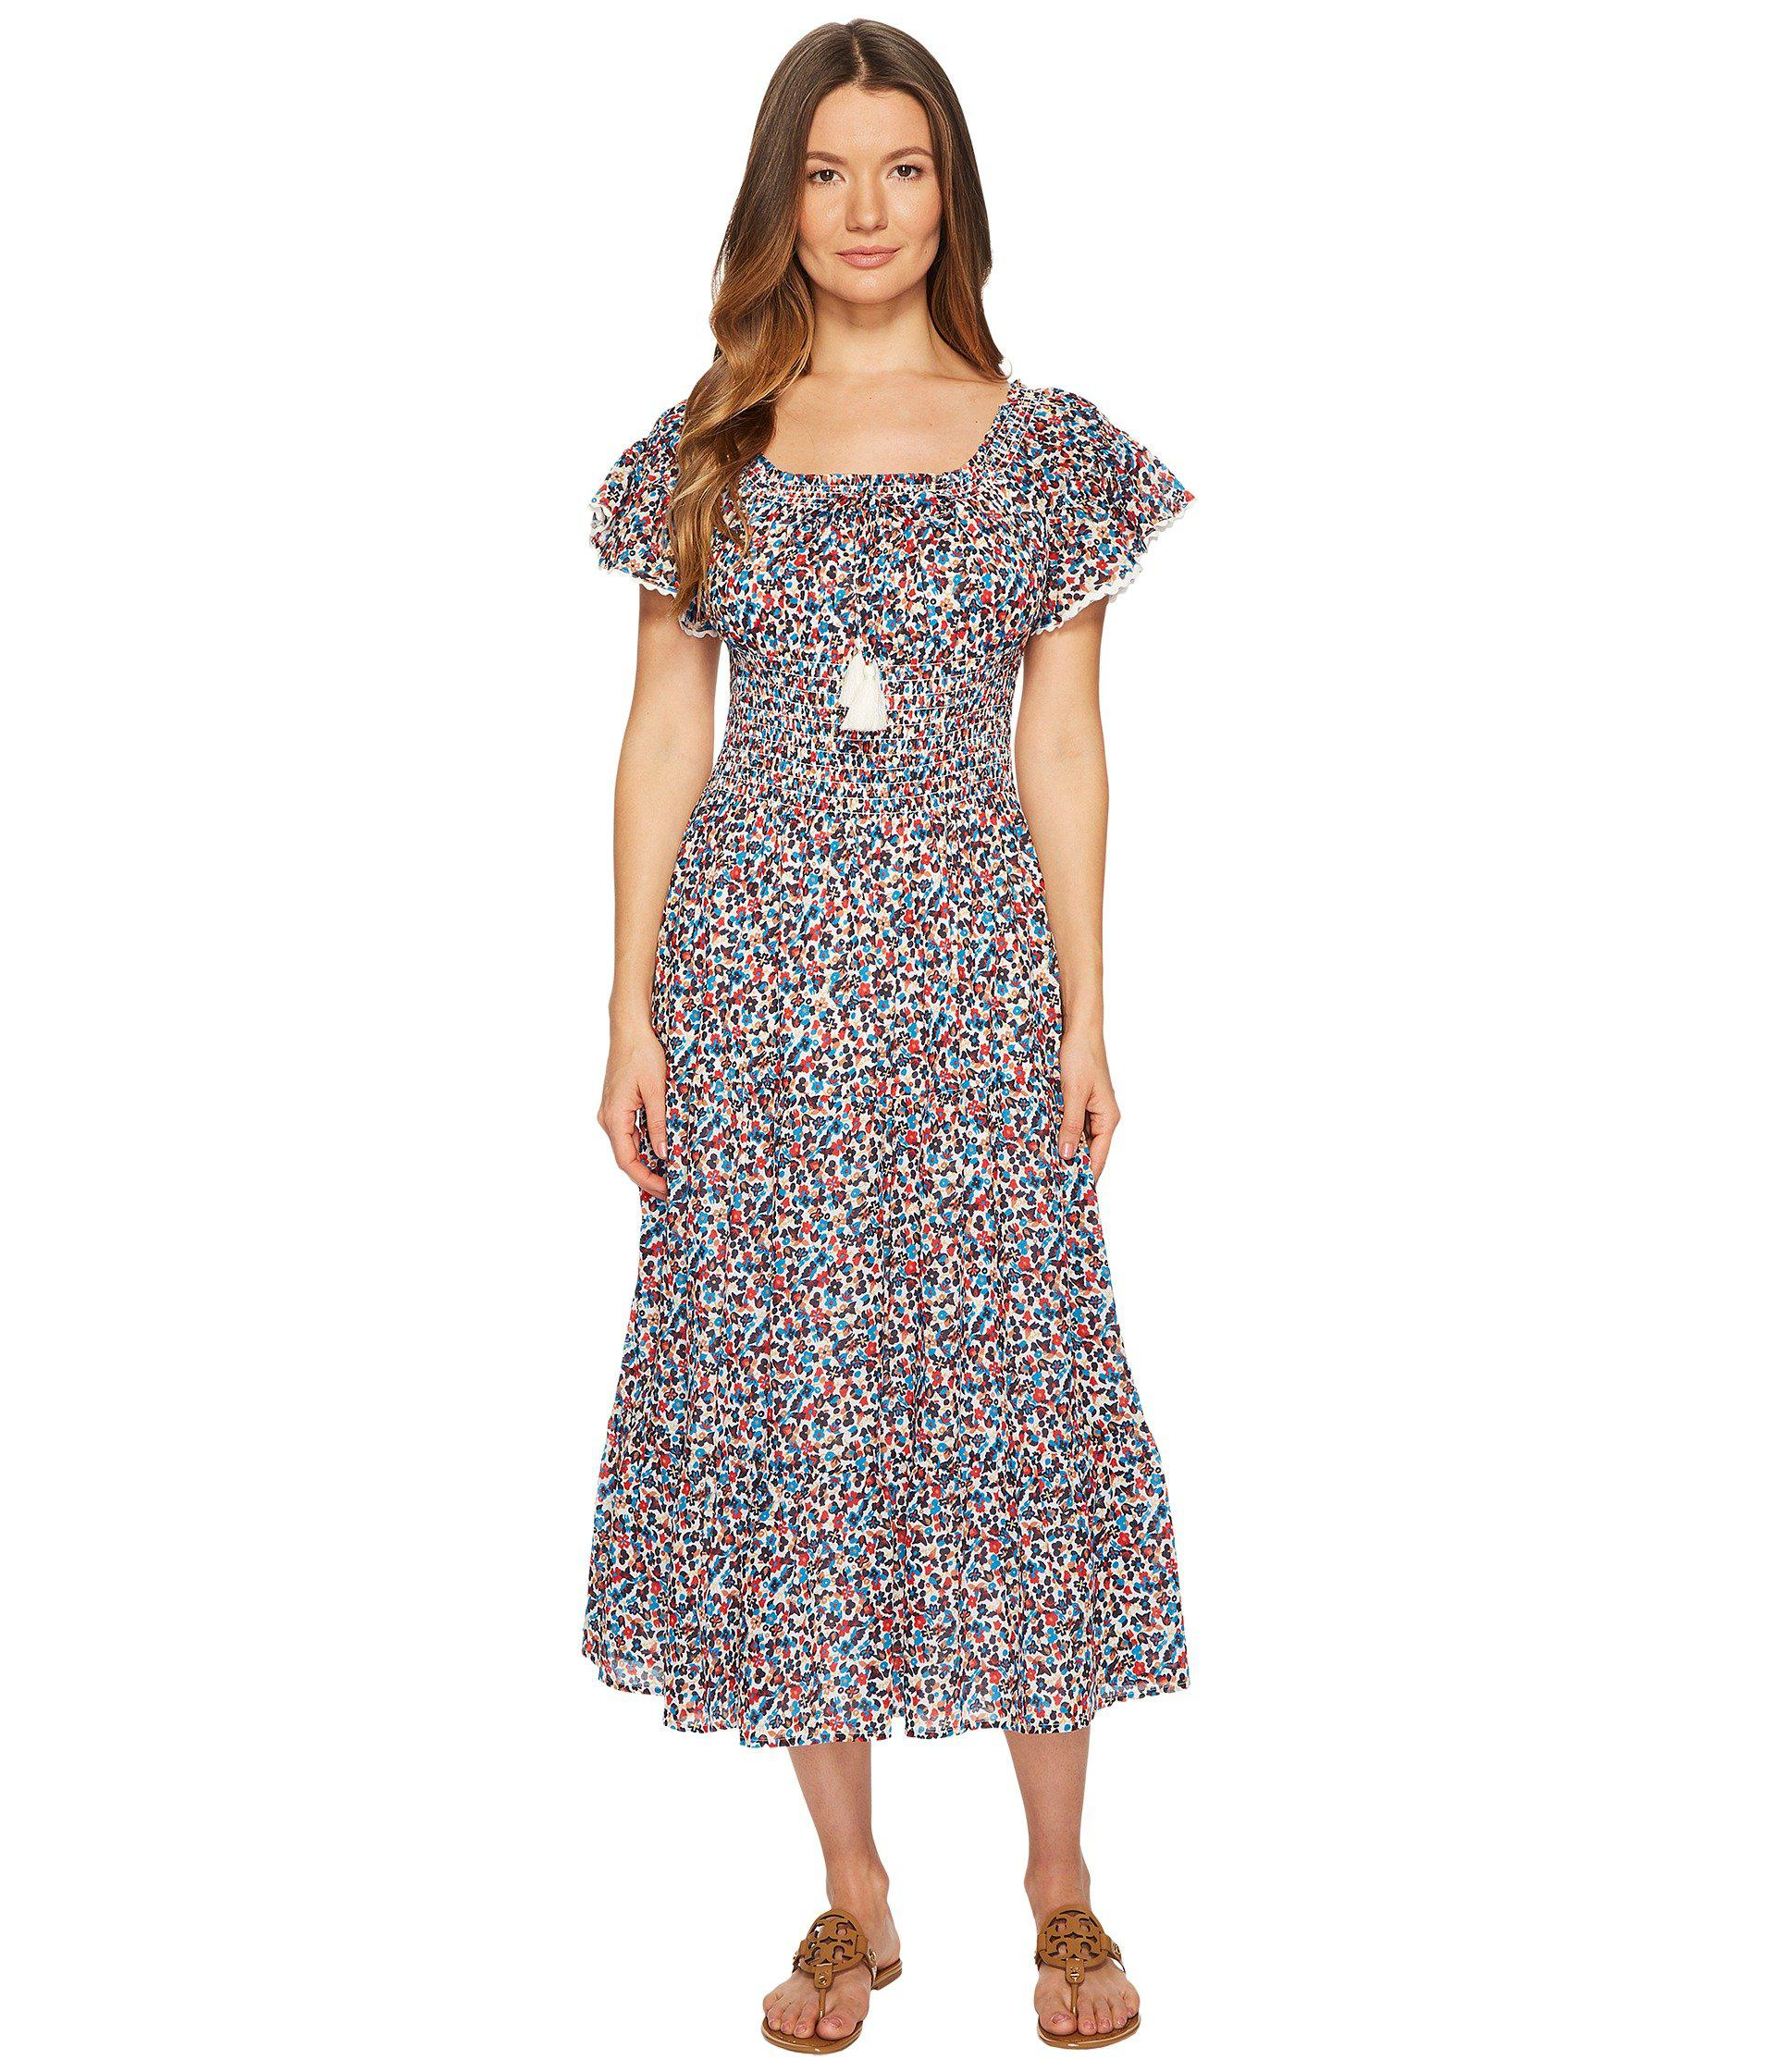 f149ef6bb322 Tory Burch Wildflower Smocked Dress Cover-up - Lyst